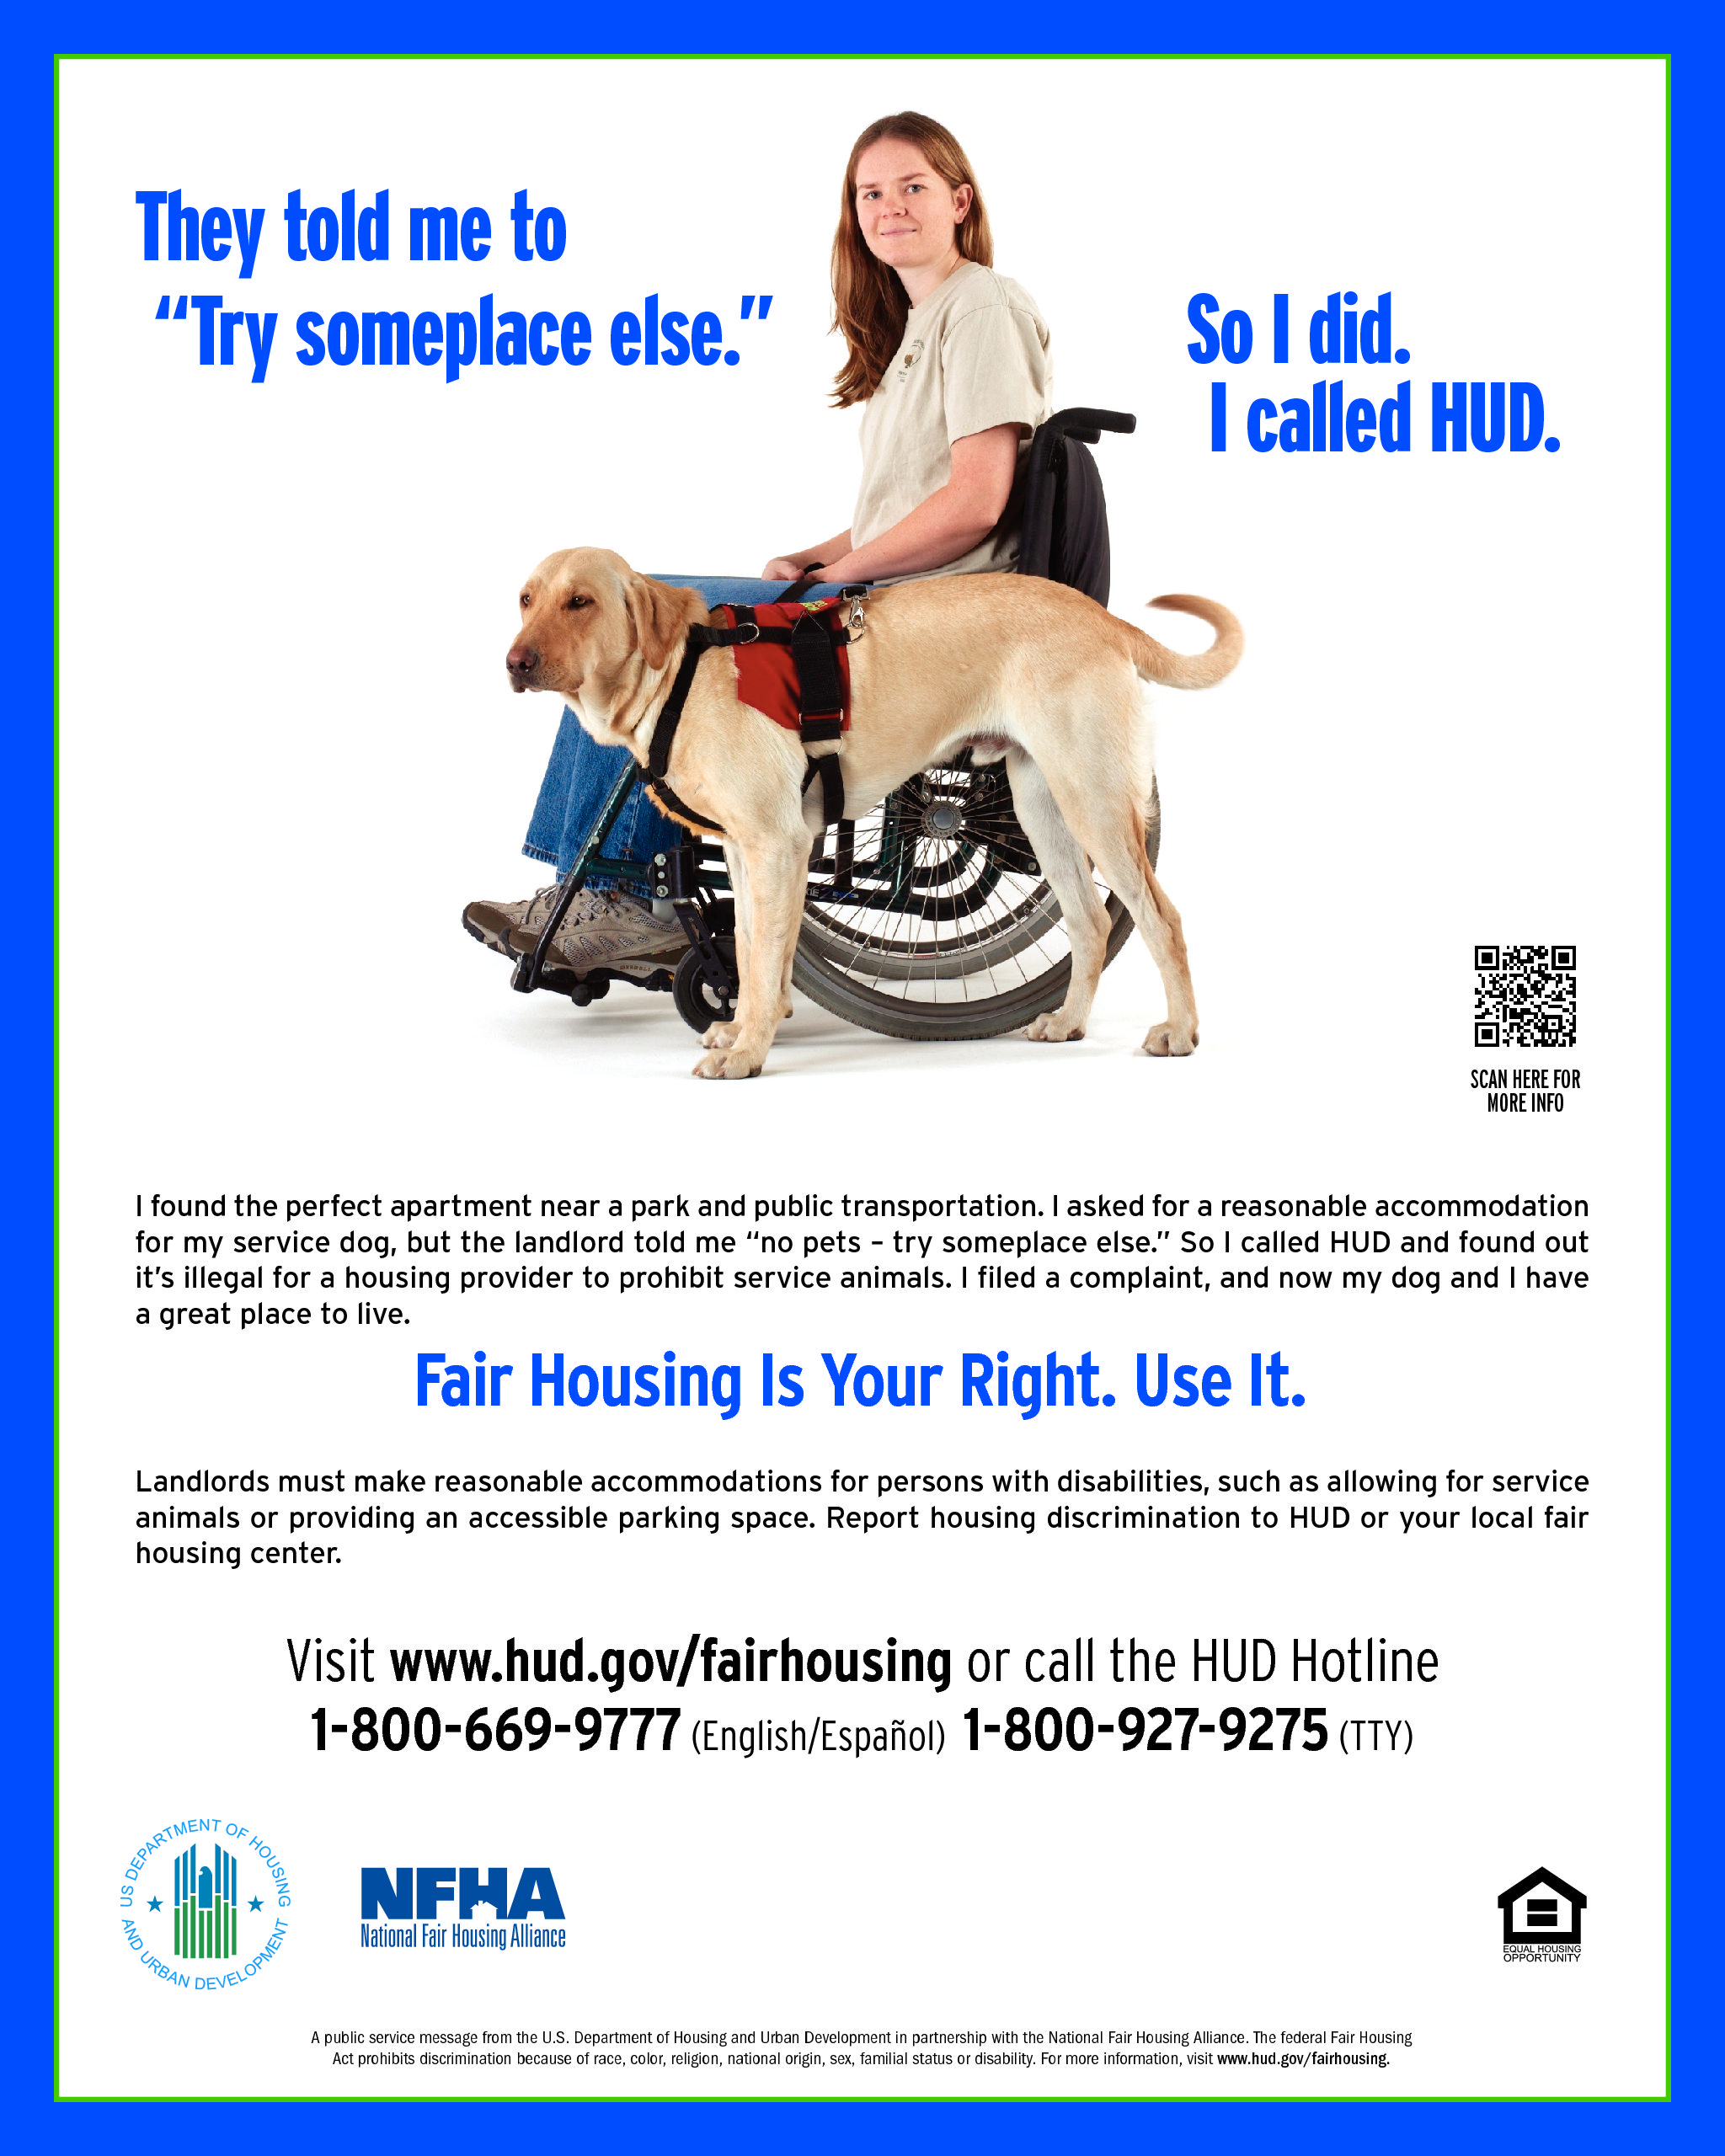 Fair Housing, Emotional Support Animals and Service Animals